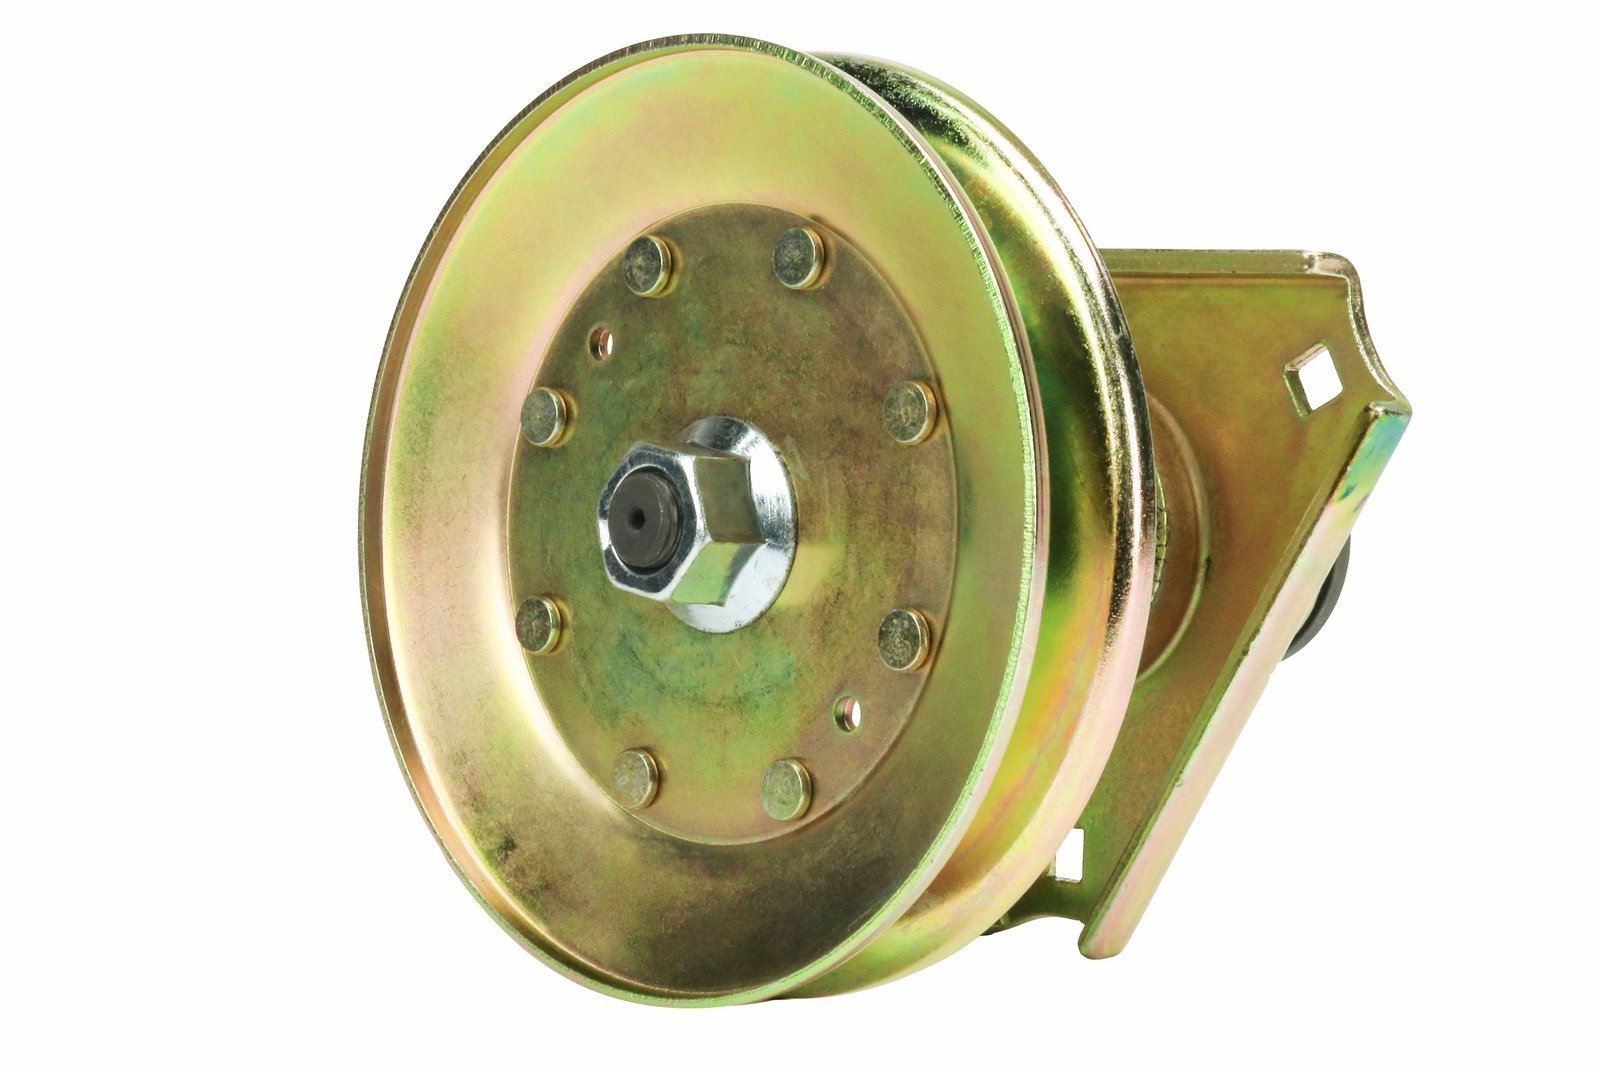 Finish Mower Spindle Assembly : Erie tools lawn mower spindle assembly for john deere